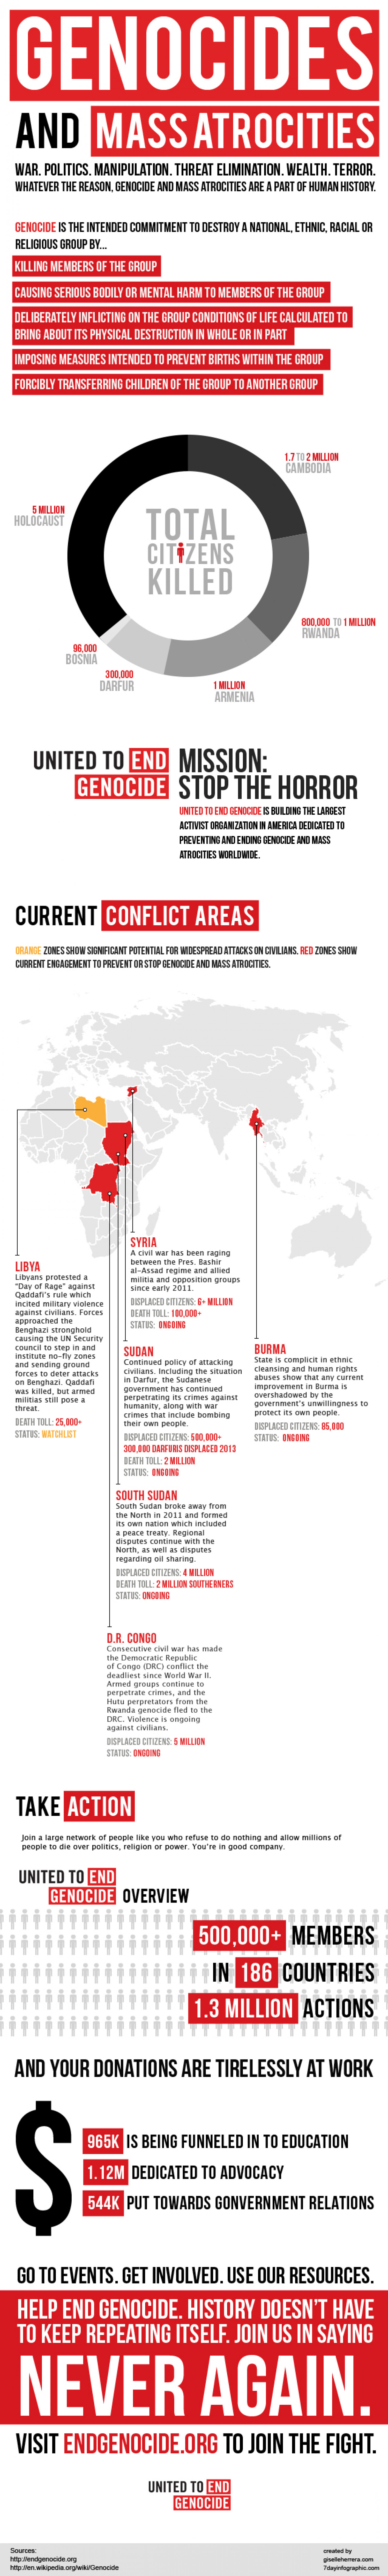 End Genocide Infographic